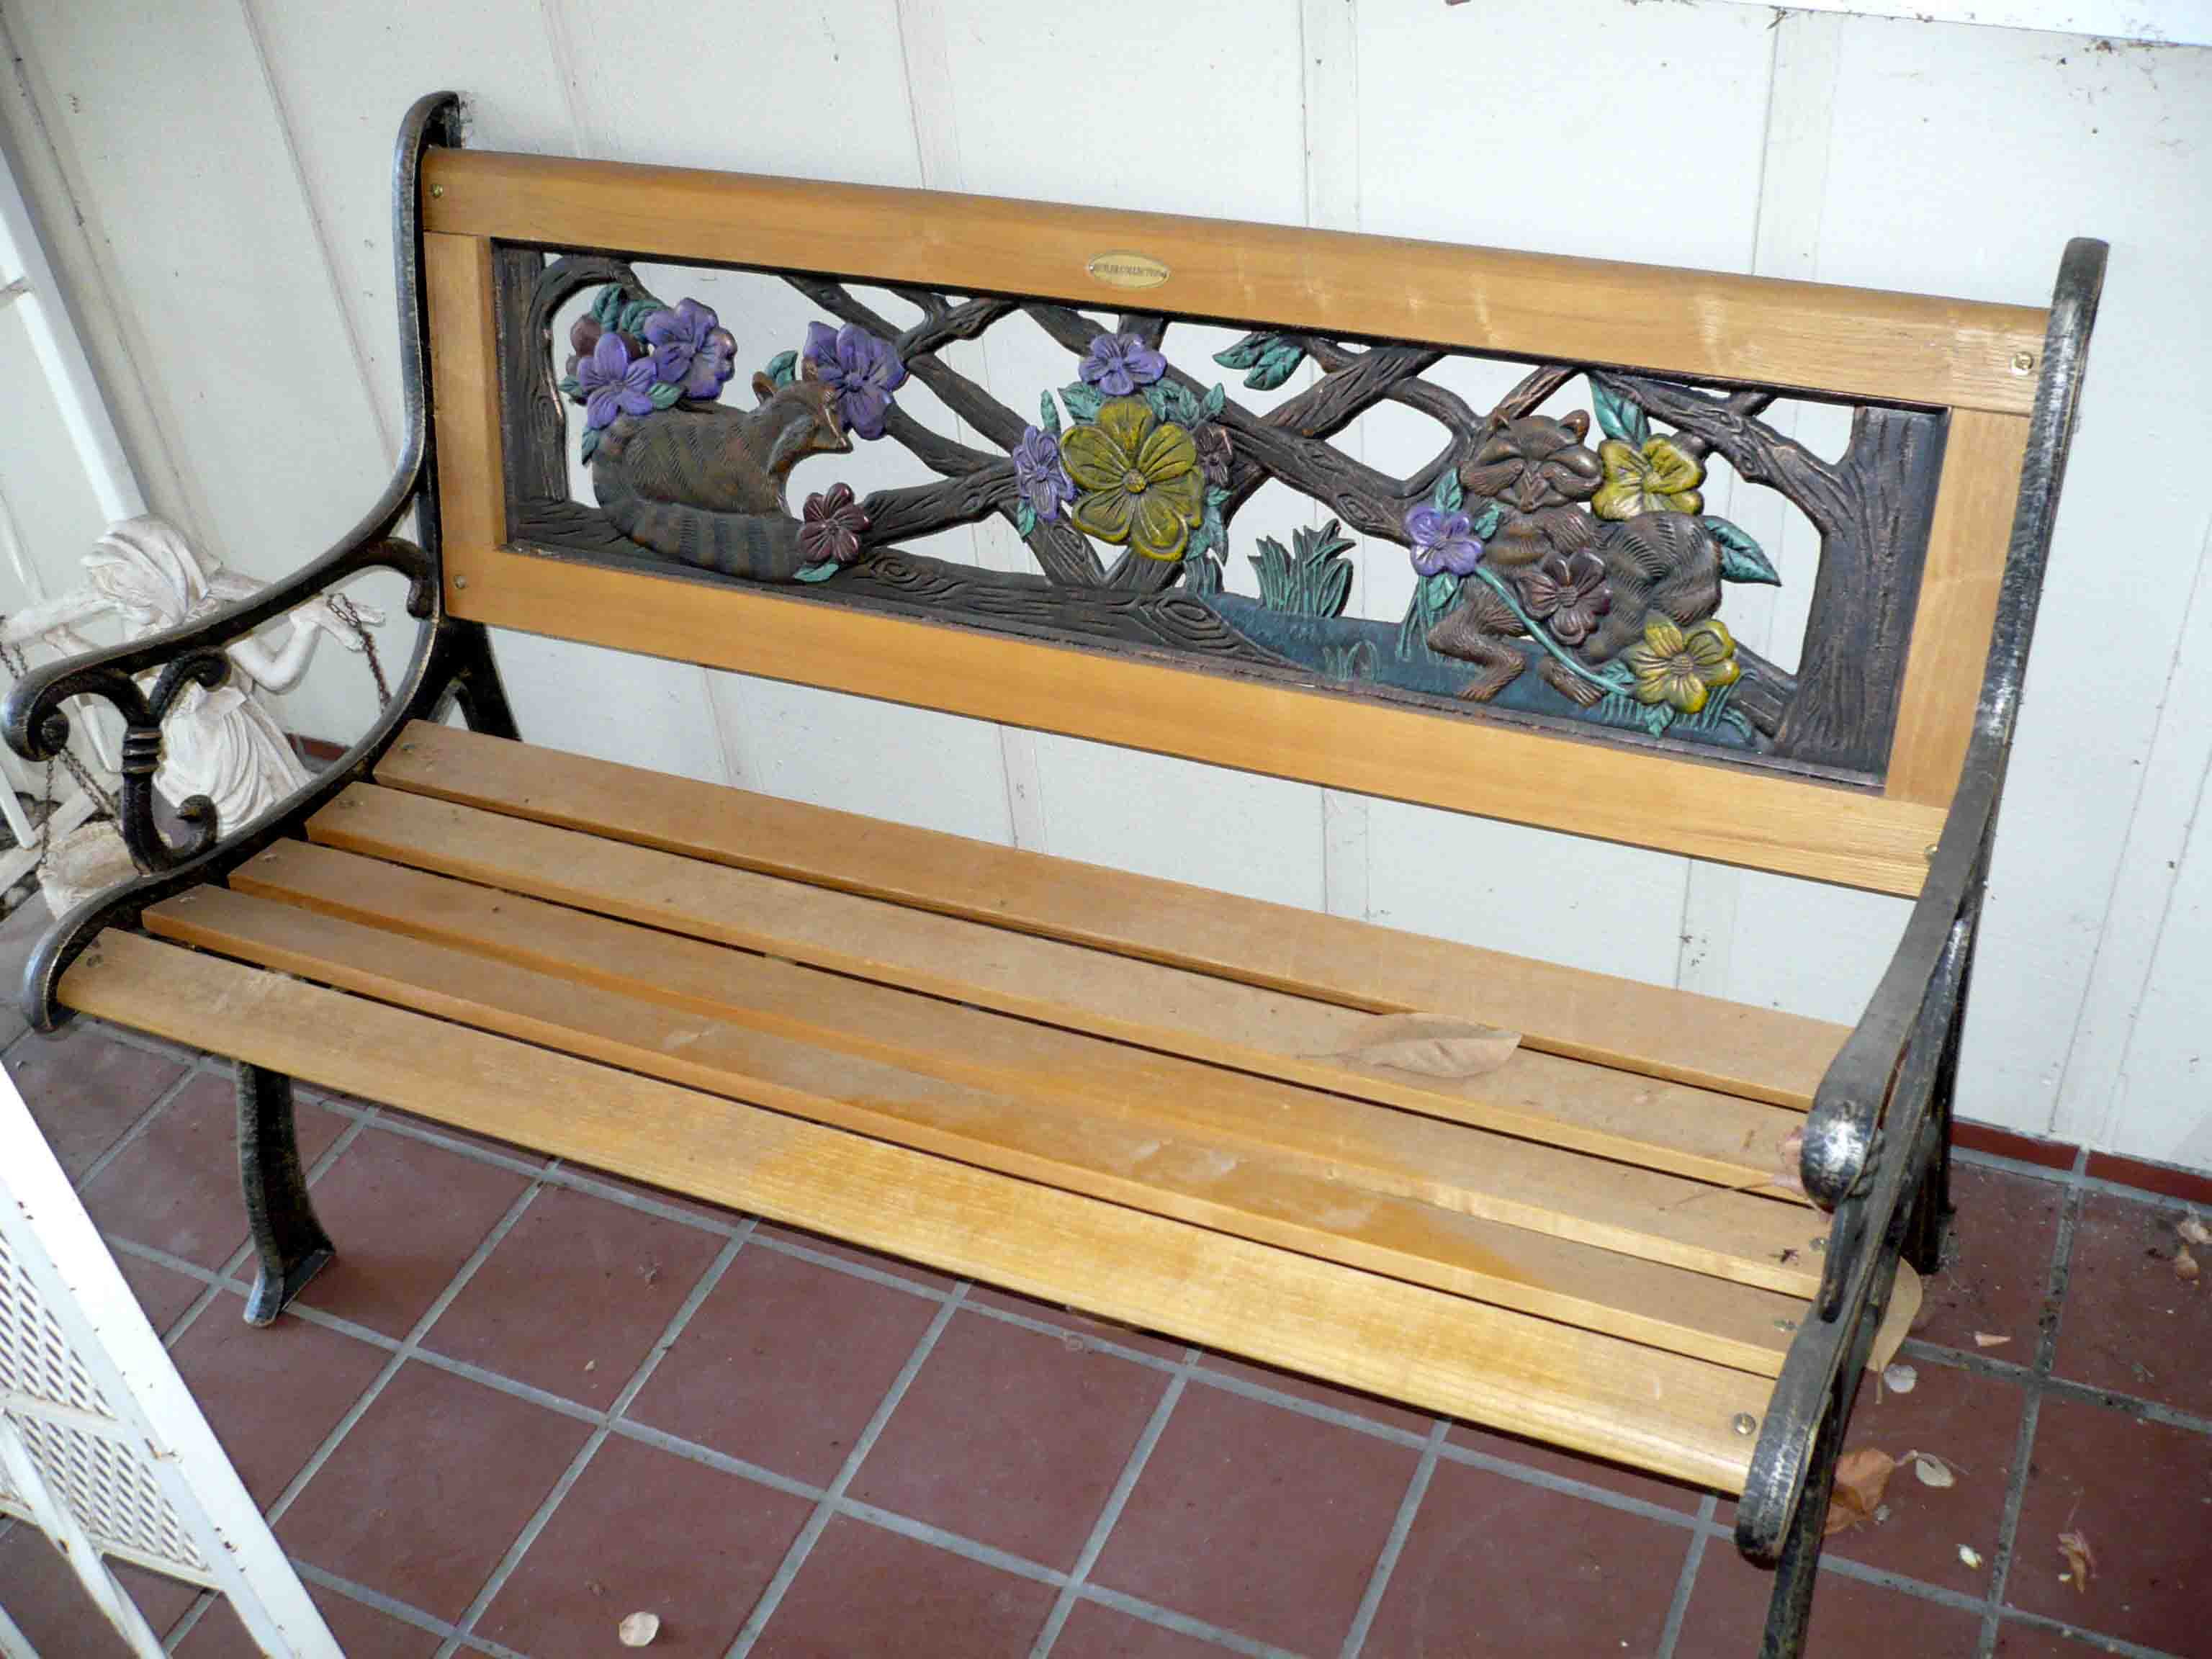 Park Benches Sale 28 Images Regal Outdoor Sitting Park Benches For Sale Park Benches For